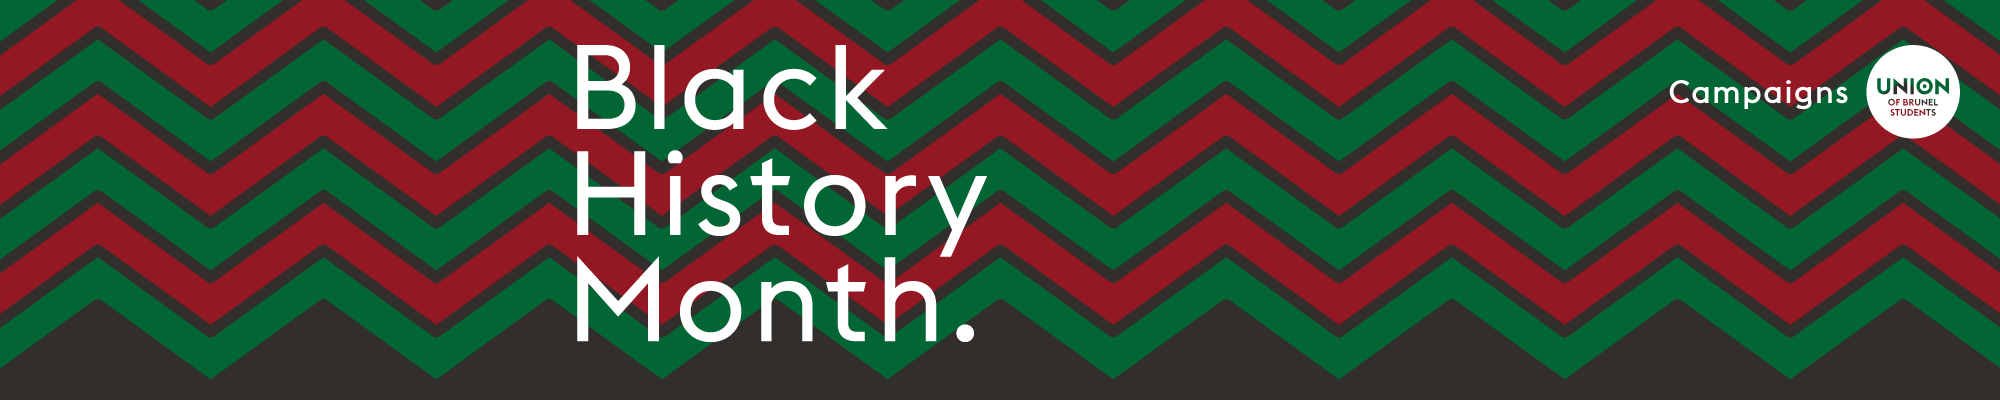 Black history month logo produced by Union of Brunel Students